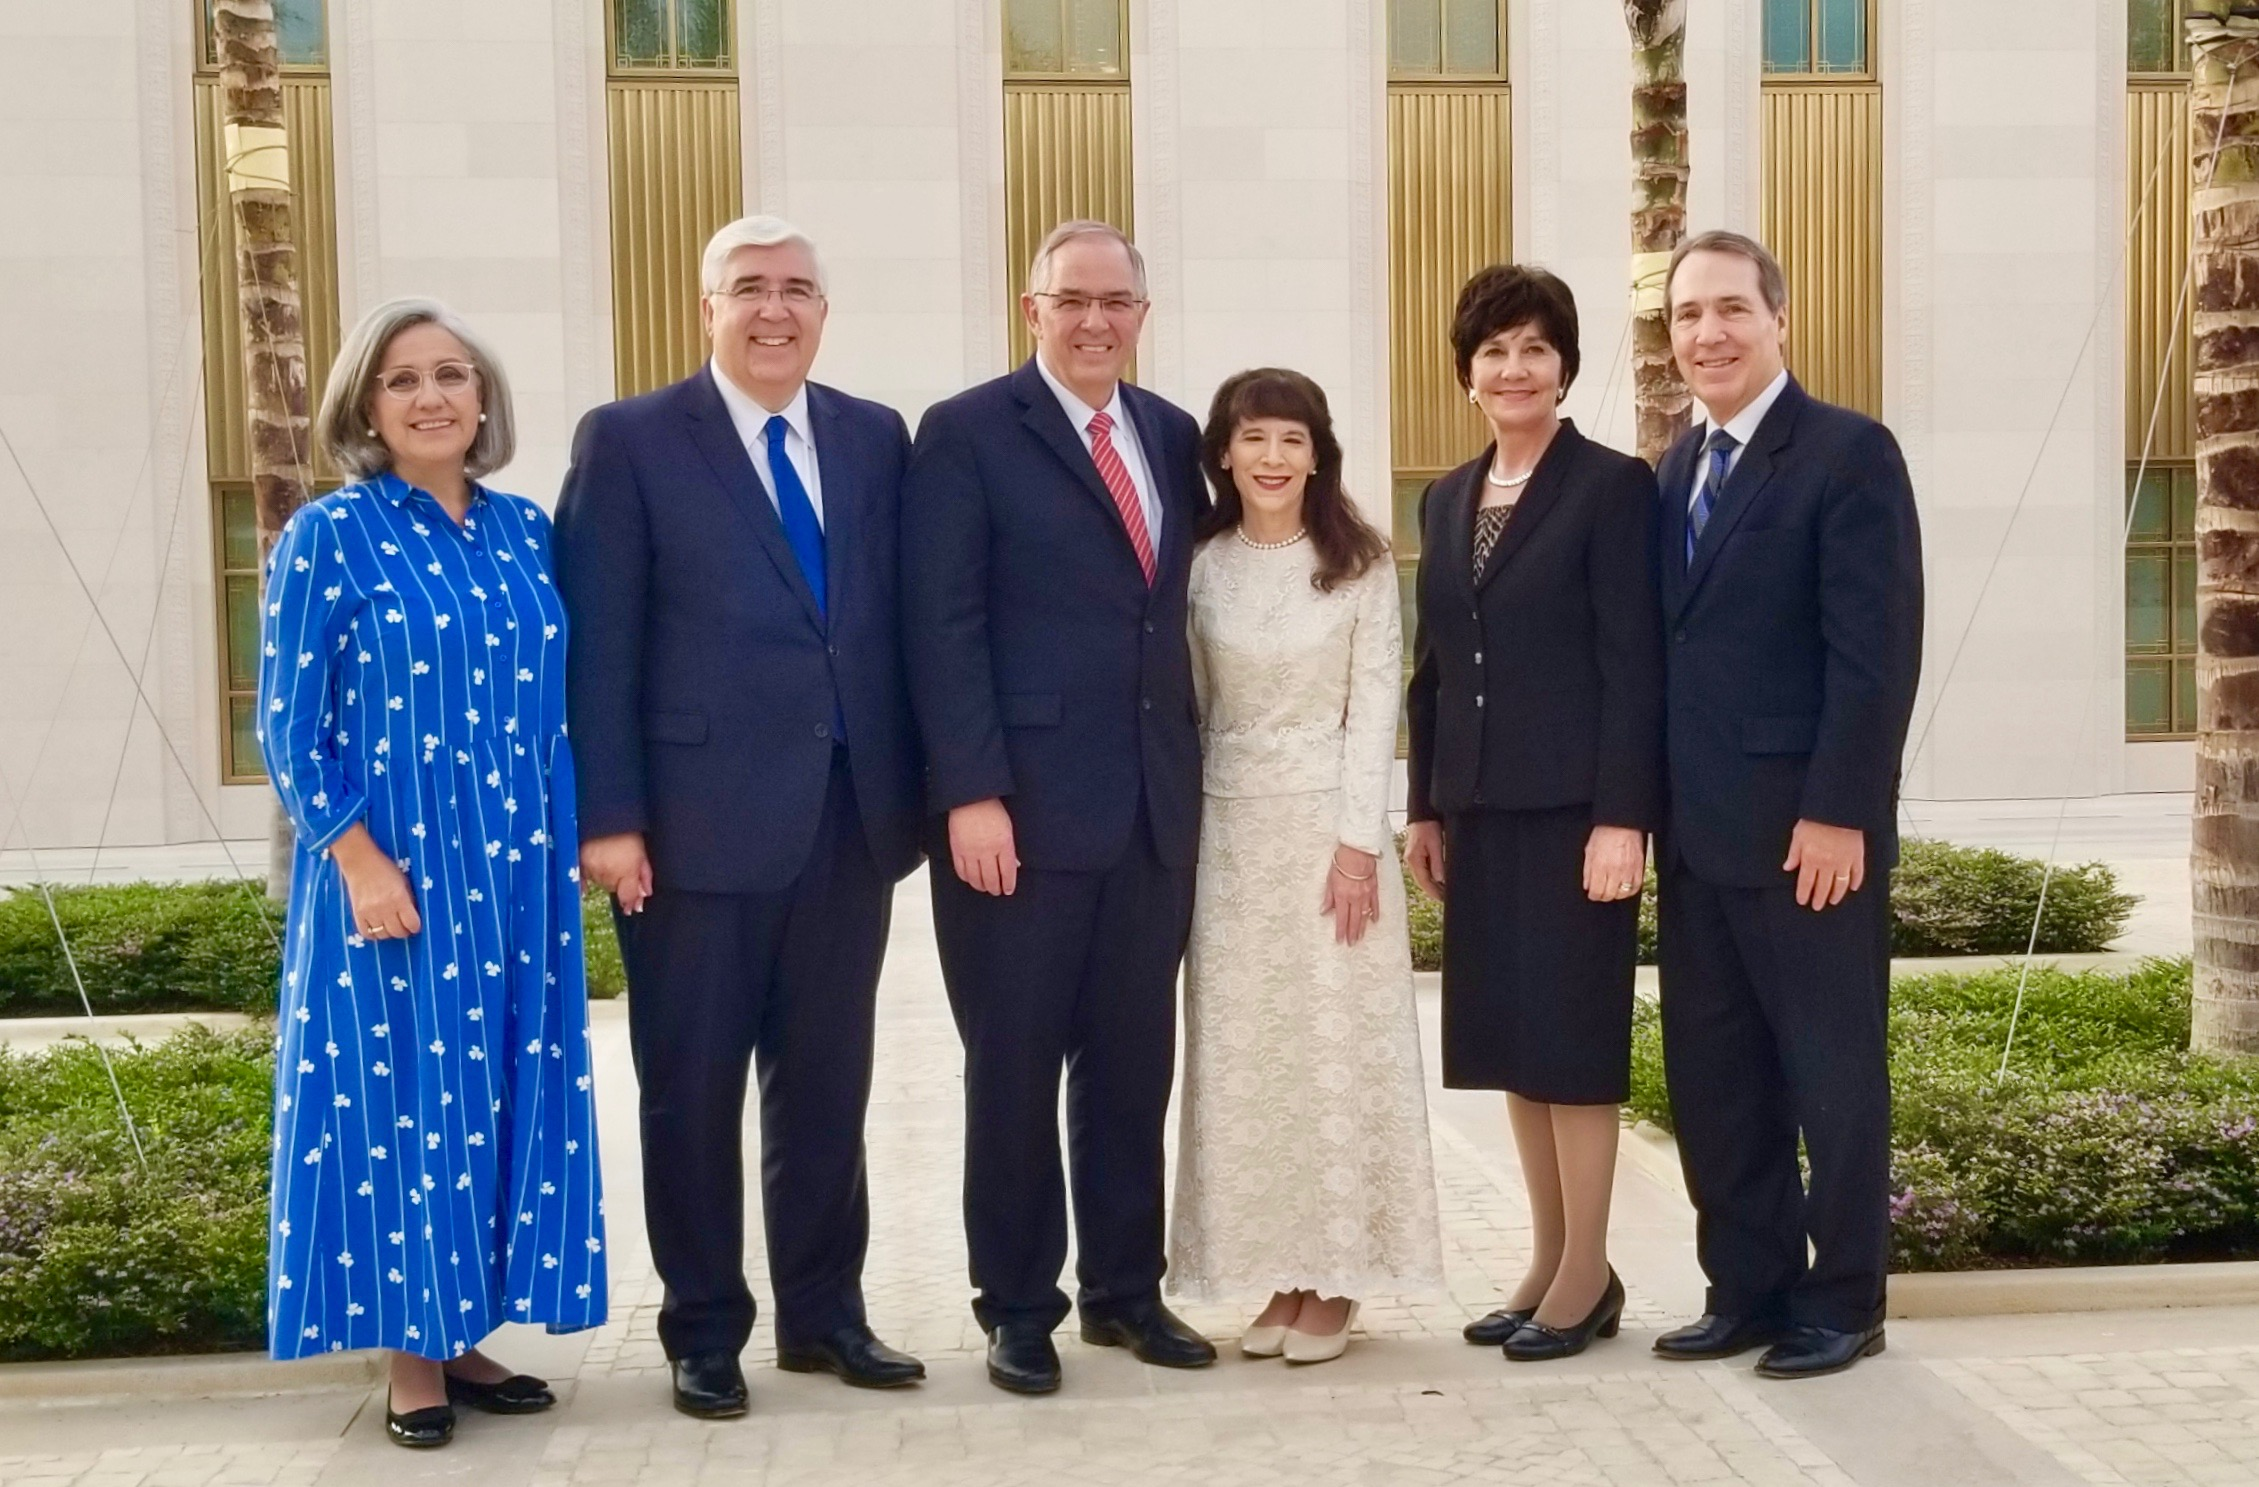 From left: Sister Filomena Teixeira, Elder José A. Teixeira, Elder Neil L. Andersen, Sister Kathy Andersen, Sister Valerie Sabin and Elder Gary B. Sabin pause for a photo outside the Lisbon Portugal Temple prior to its dedication on Sunday, Sept. 15, 2019.